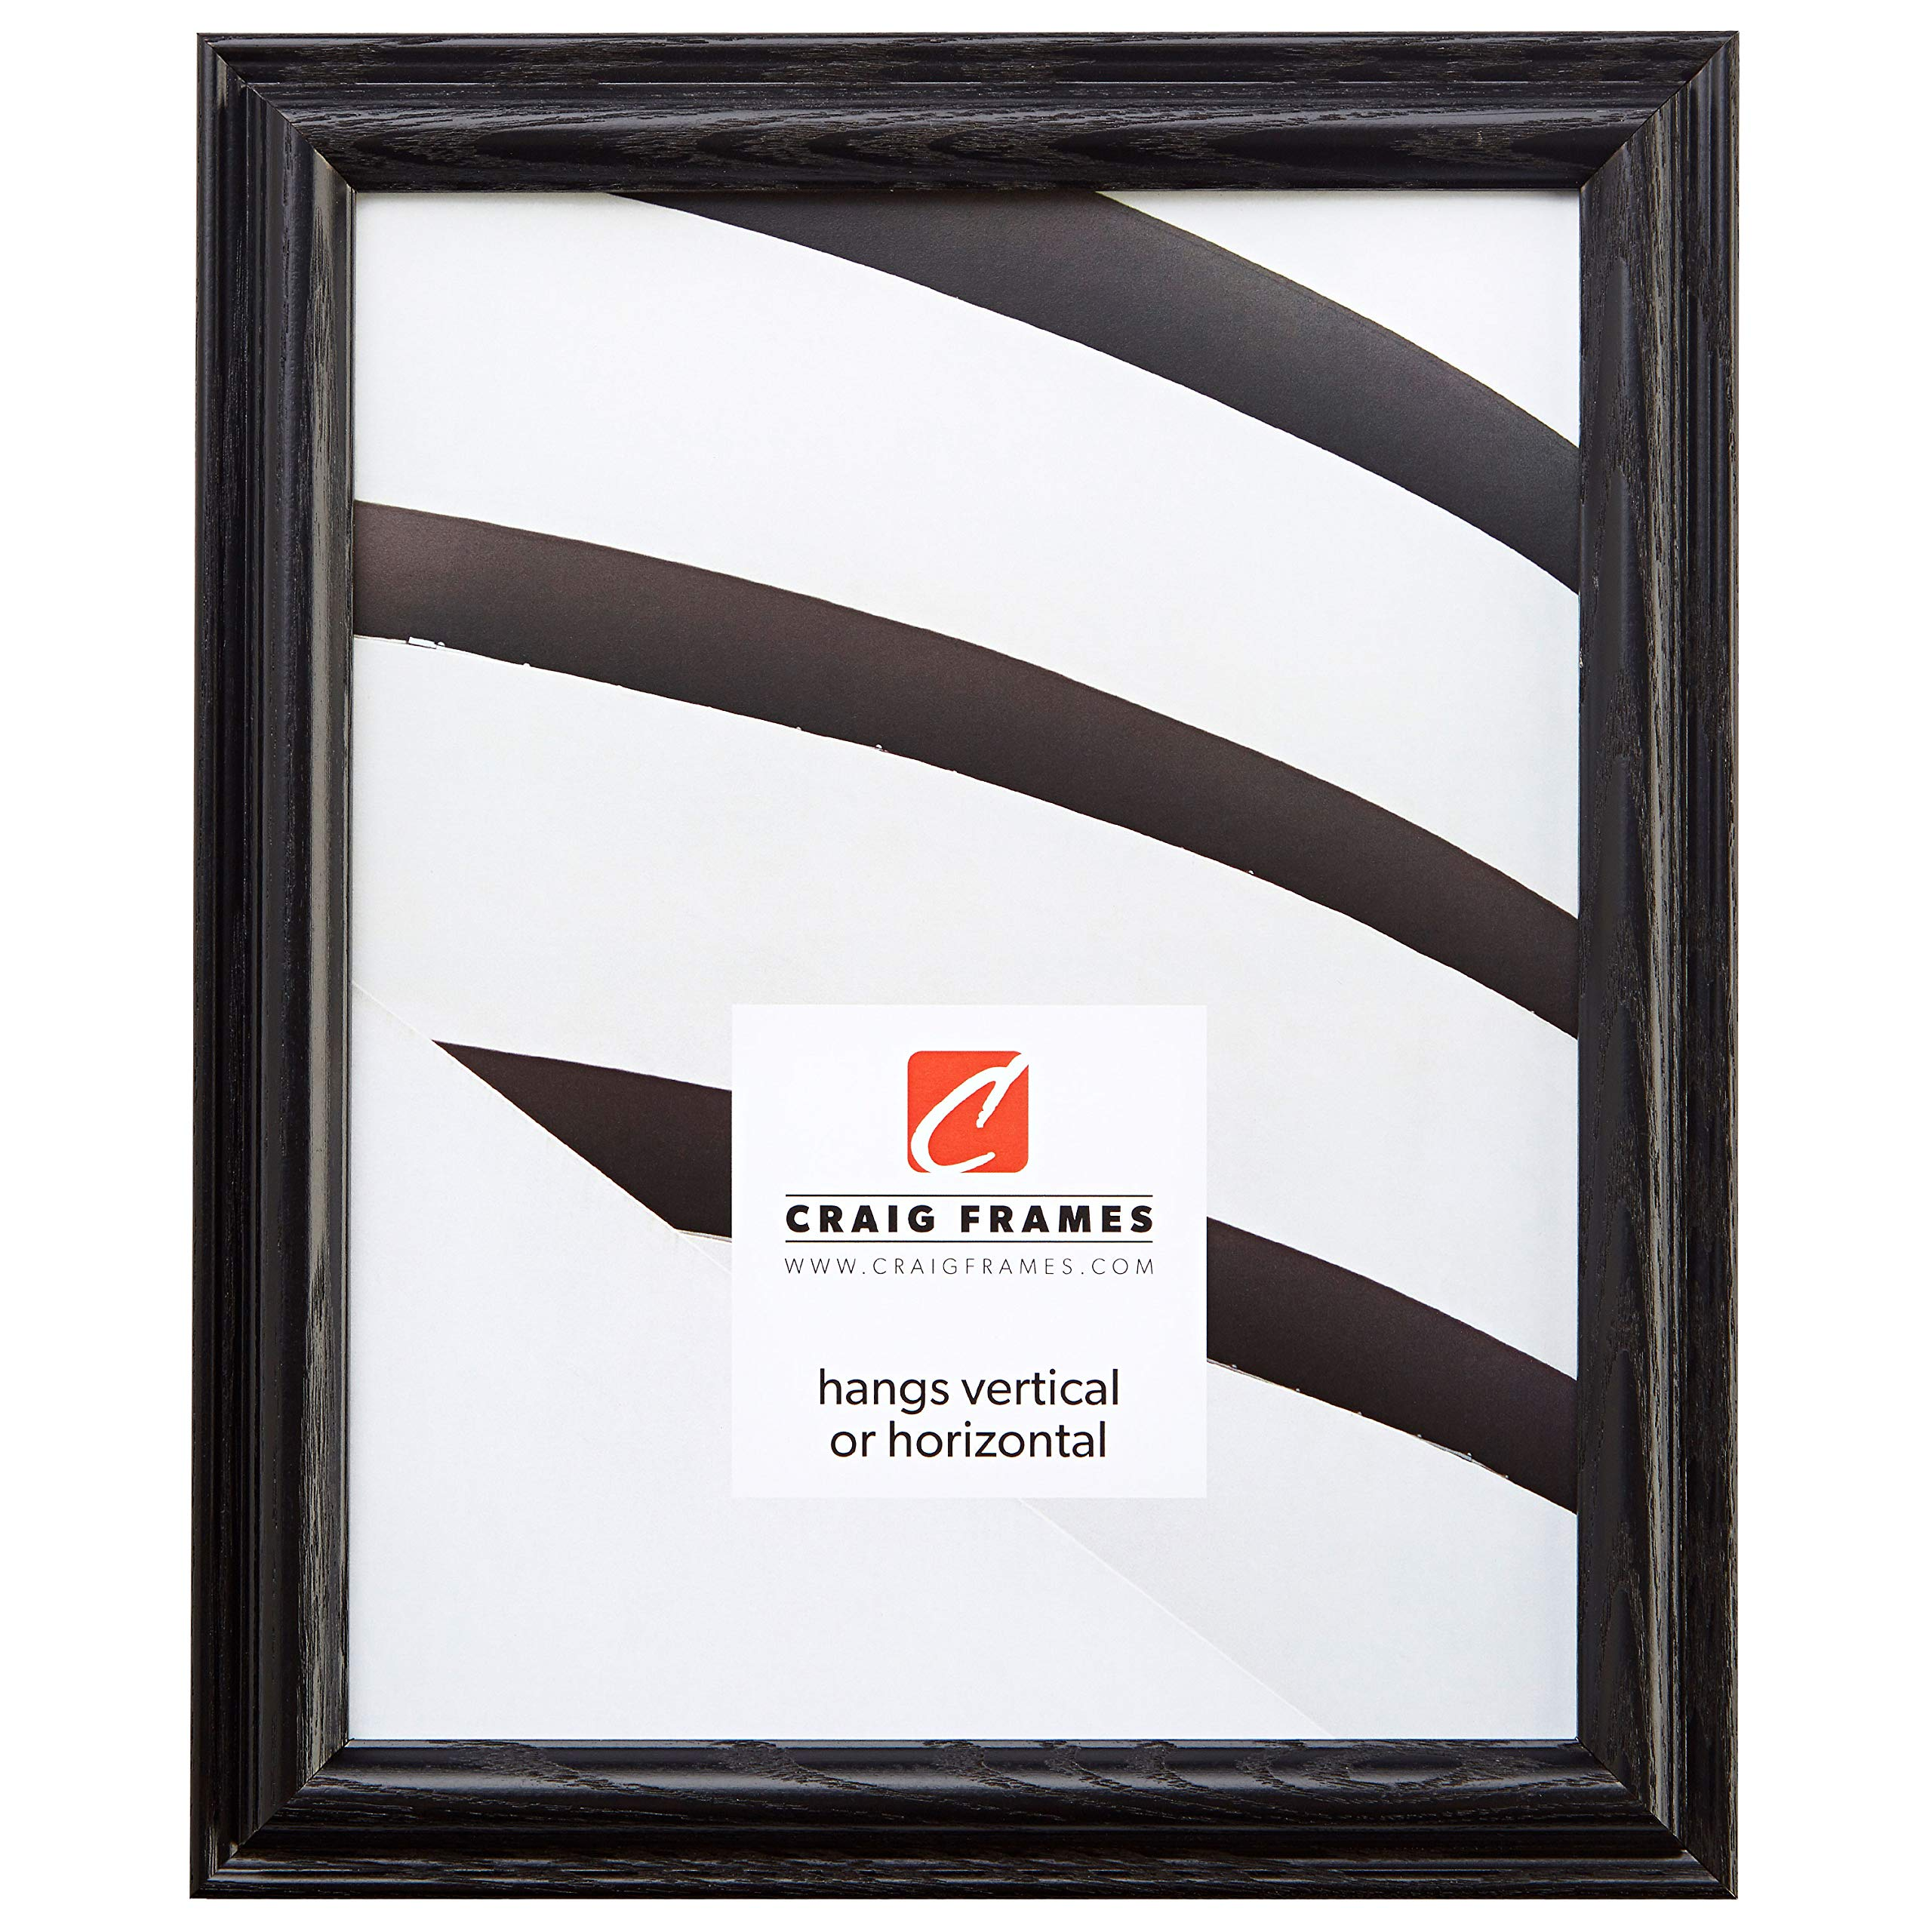 Craig Frames 130ASHBK Wood Grain Finish 21 by 24-Inch Picture/Poster Frame, 1-Inch Wide, Black